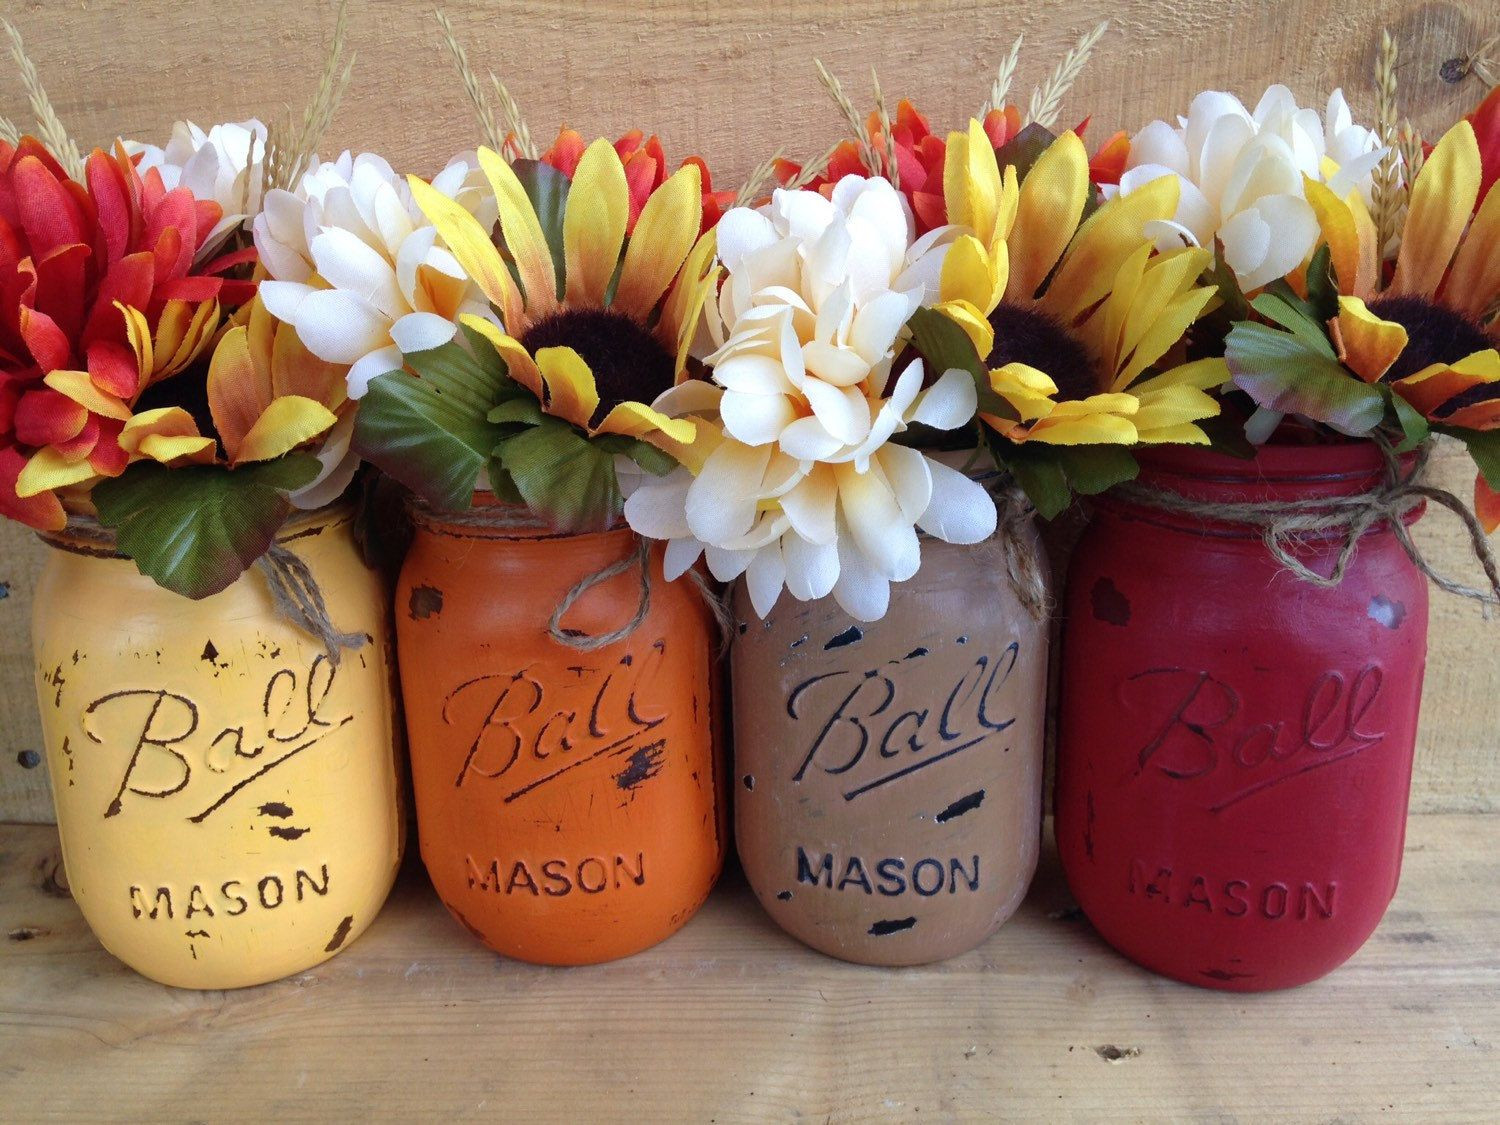 Mason Jar Vase Of Painted Mason Jars Fall Vases Fall Decor Rustic Decor Home Decor within Painted Mason Jars Fall Vases Fall Decor Rustic Decor Home Decor Thanksgiving Decor Fall Wedding Centerpieces Holiday Decor by Winecountryaccents On